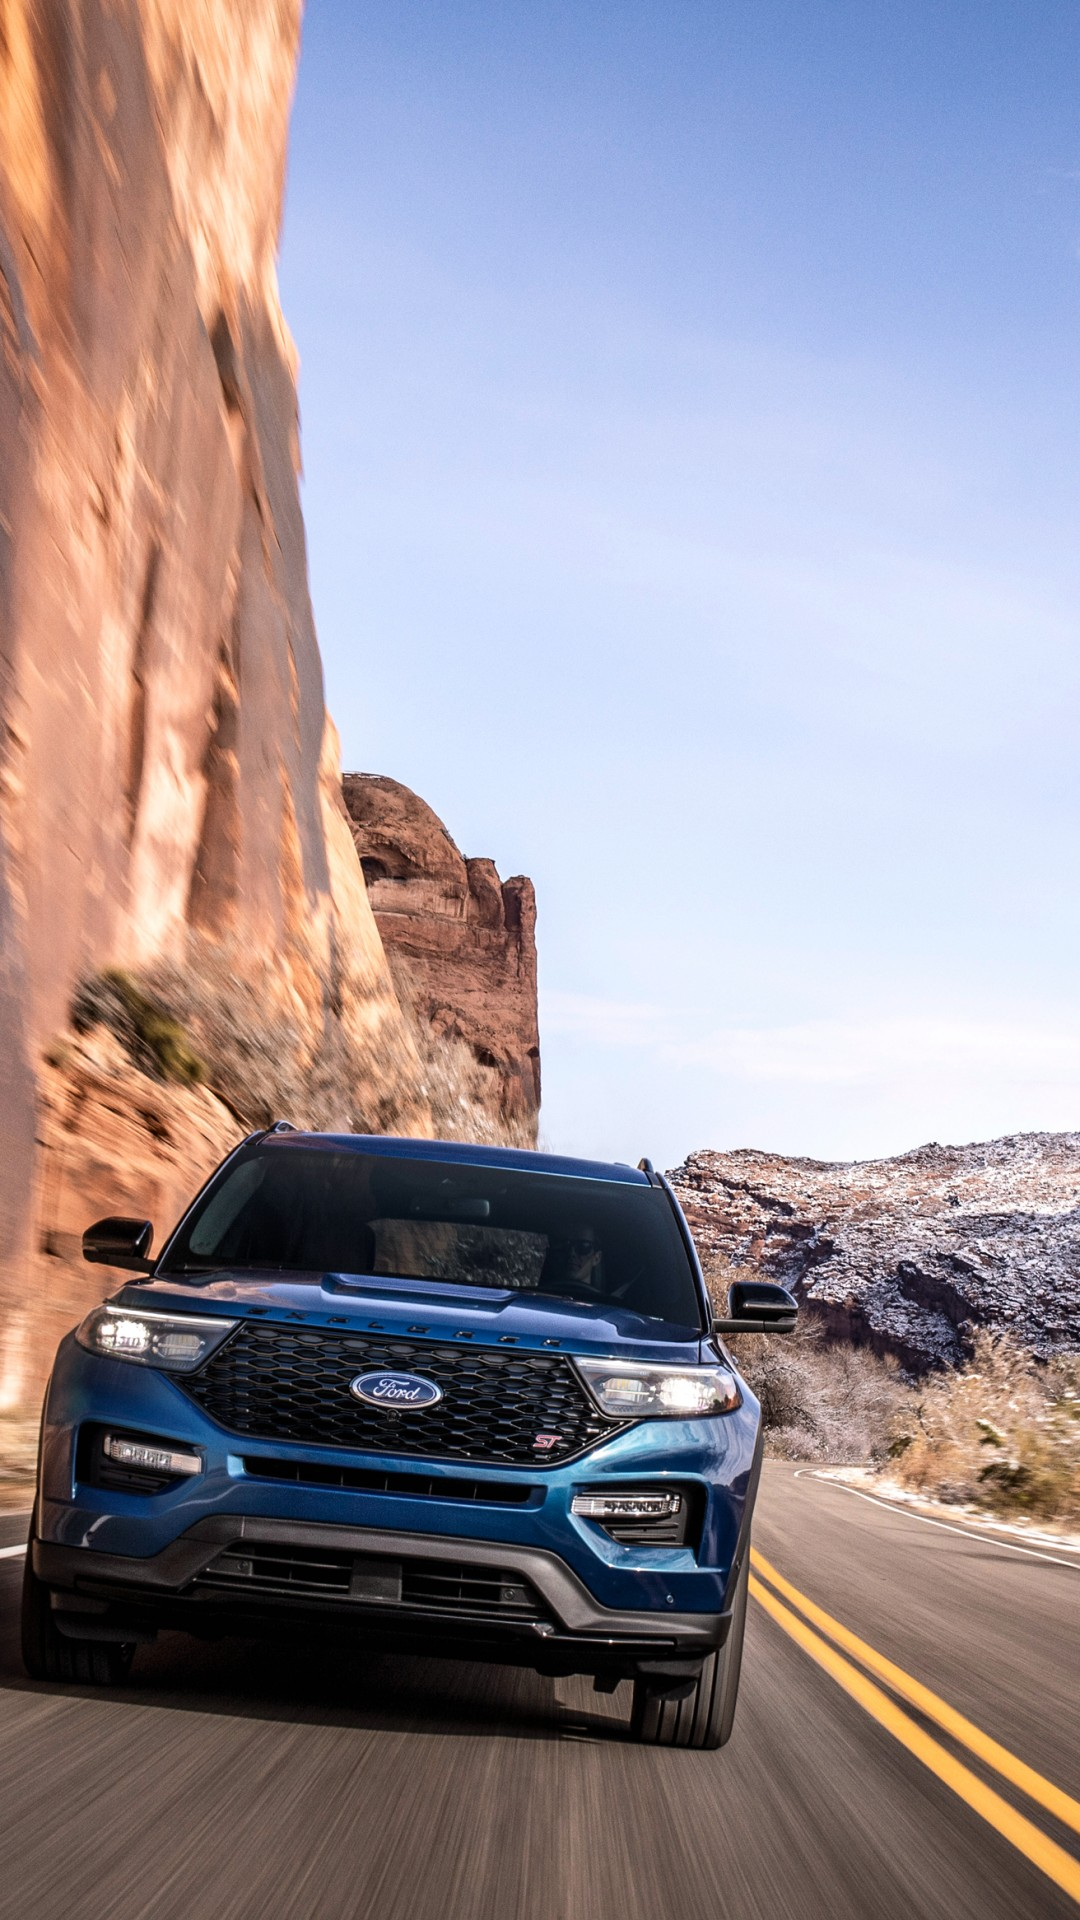 Wallpaper Ford Explorer, SUV, 2020 Cars, 2019 Detroit Auto ...